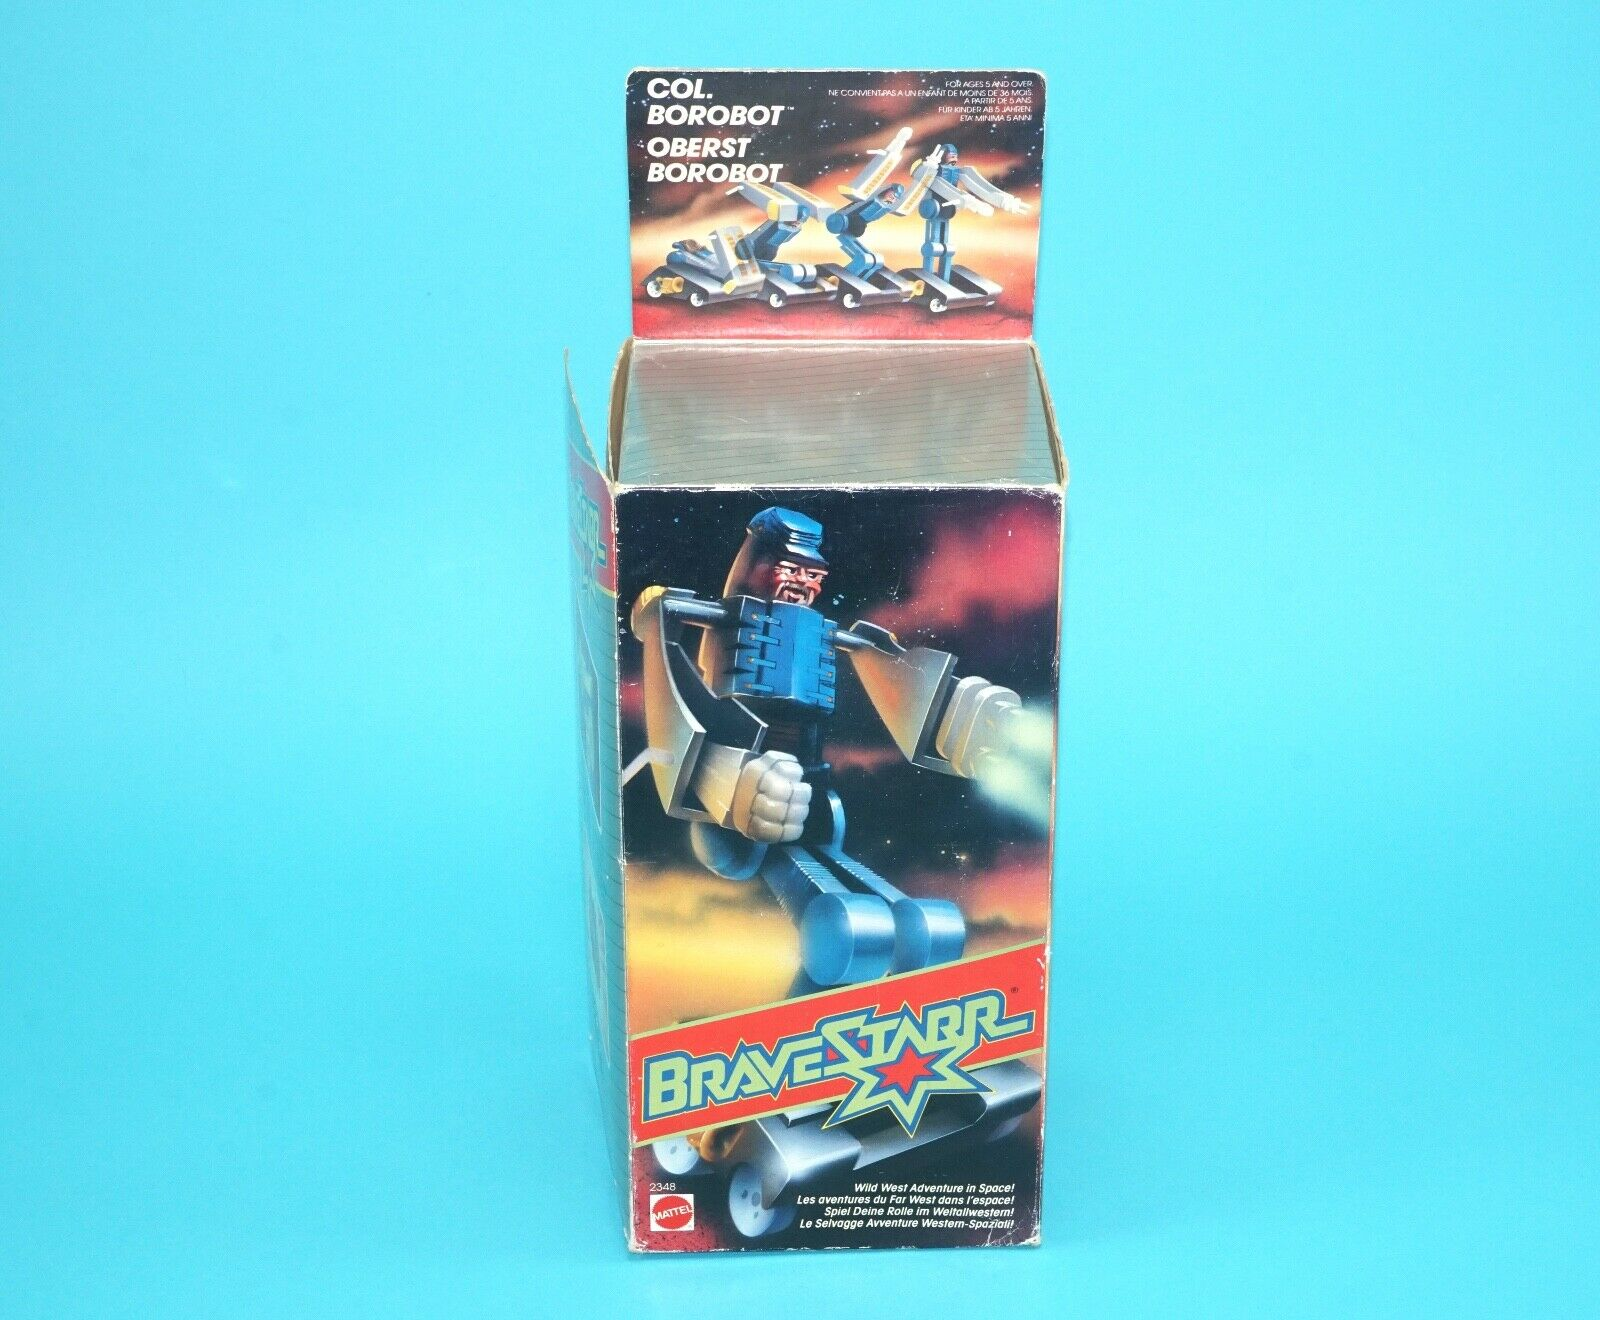 BRAVESTARR COLONEL BgoldBOT MIB SEALED CONTENTS EURO BOX 1986 MATTEL MOTU